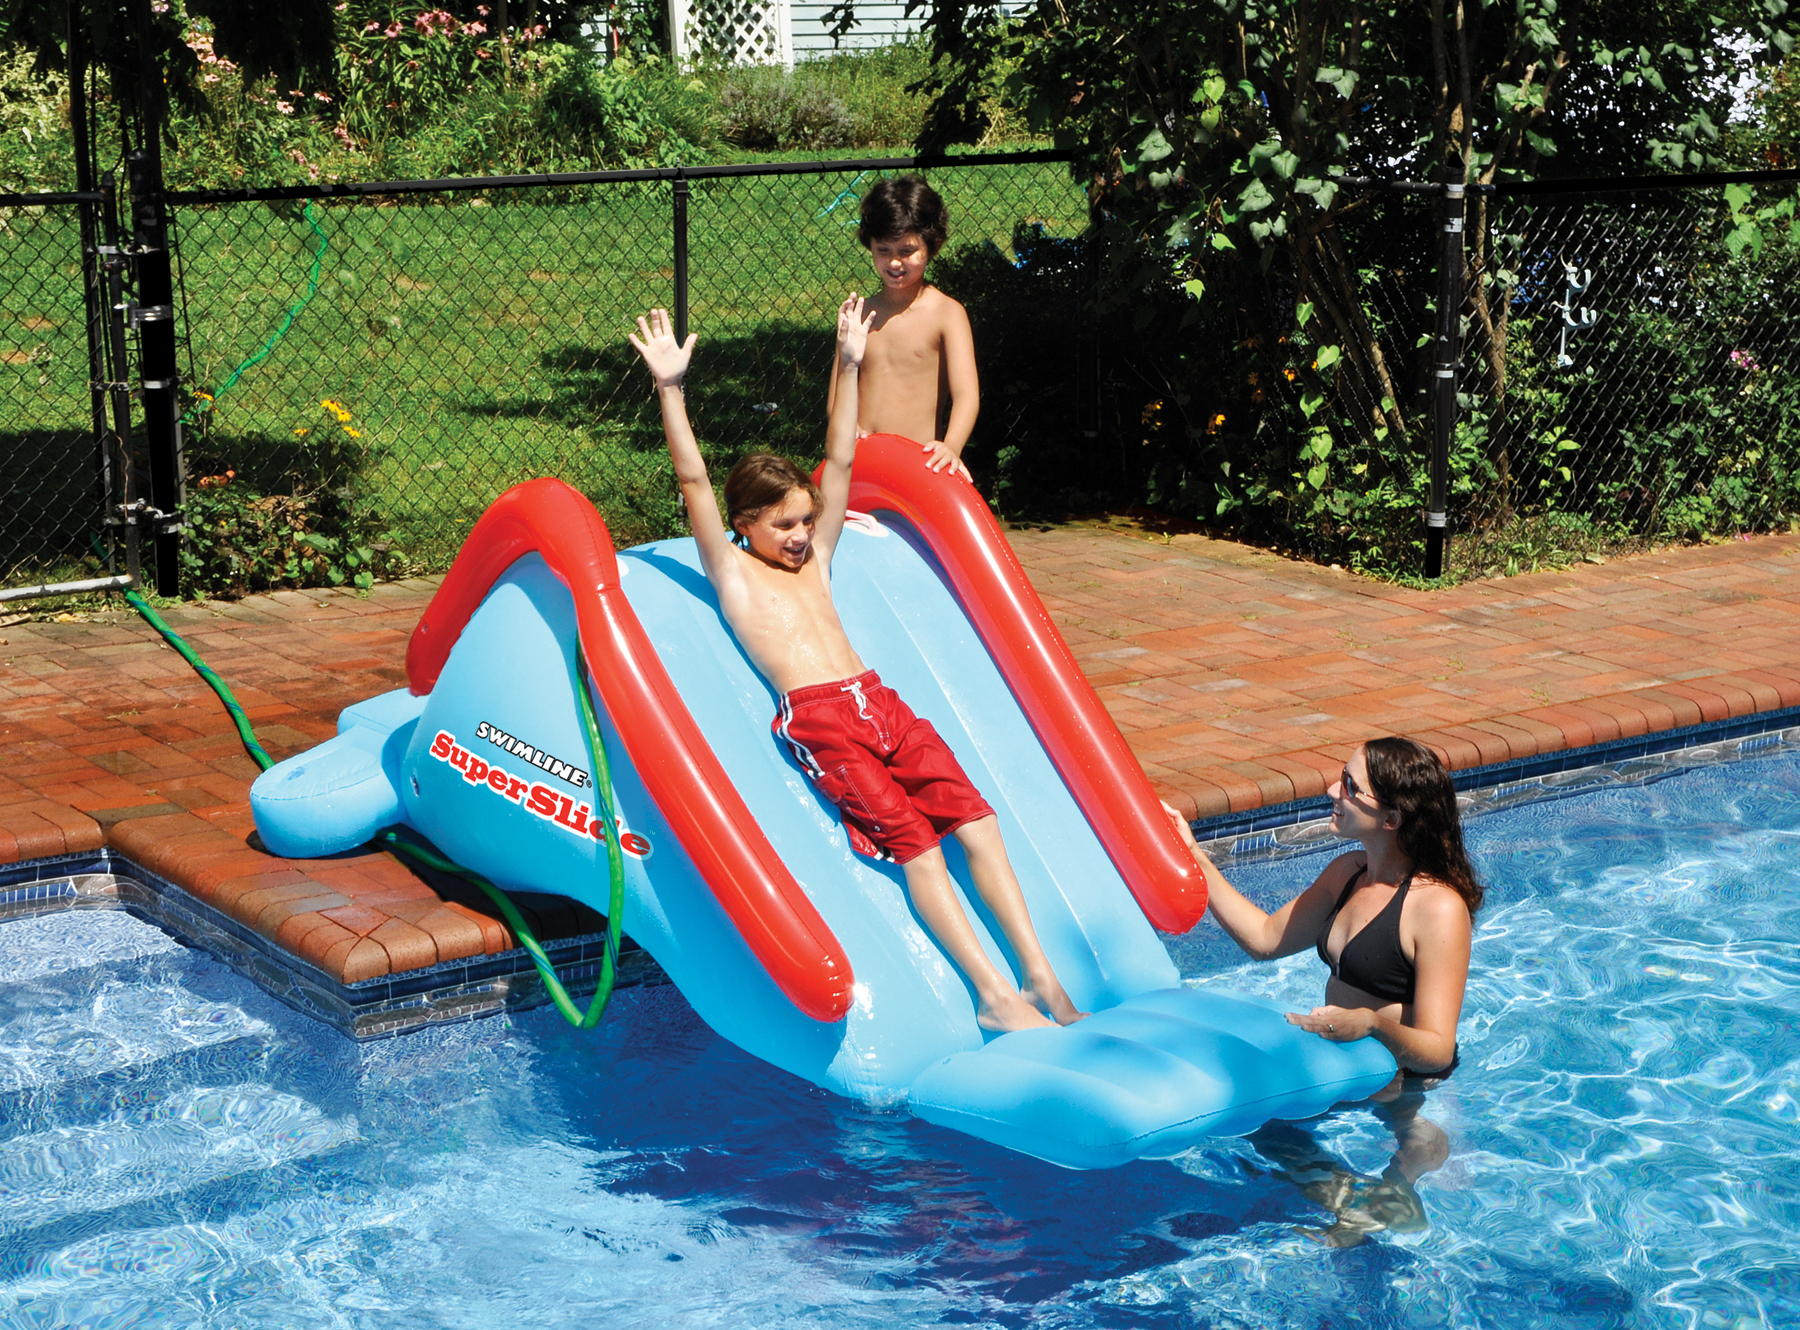 90809�Swimline 90809 Super Slide